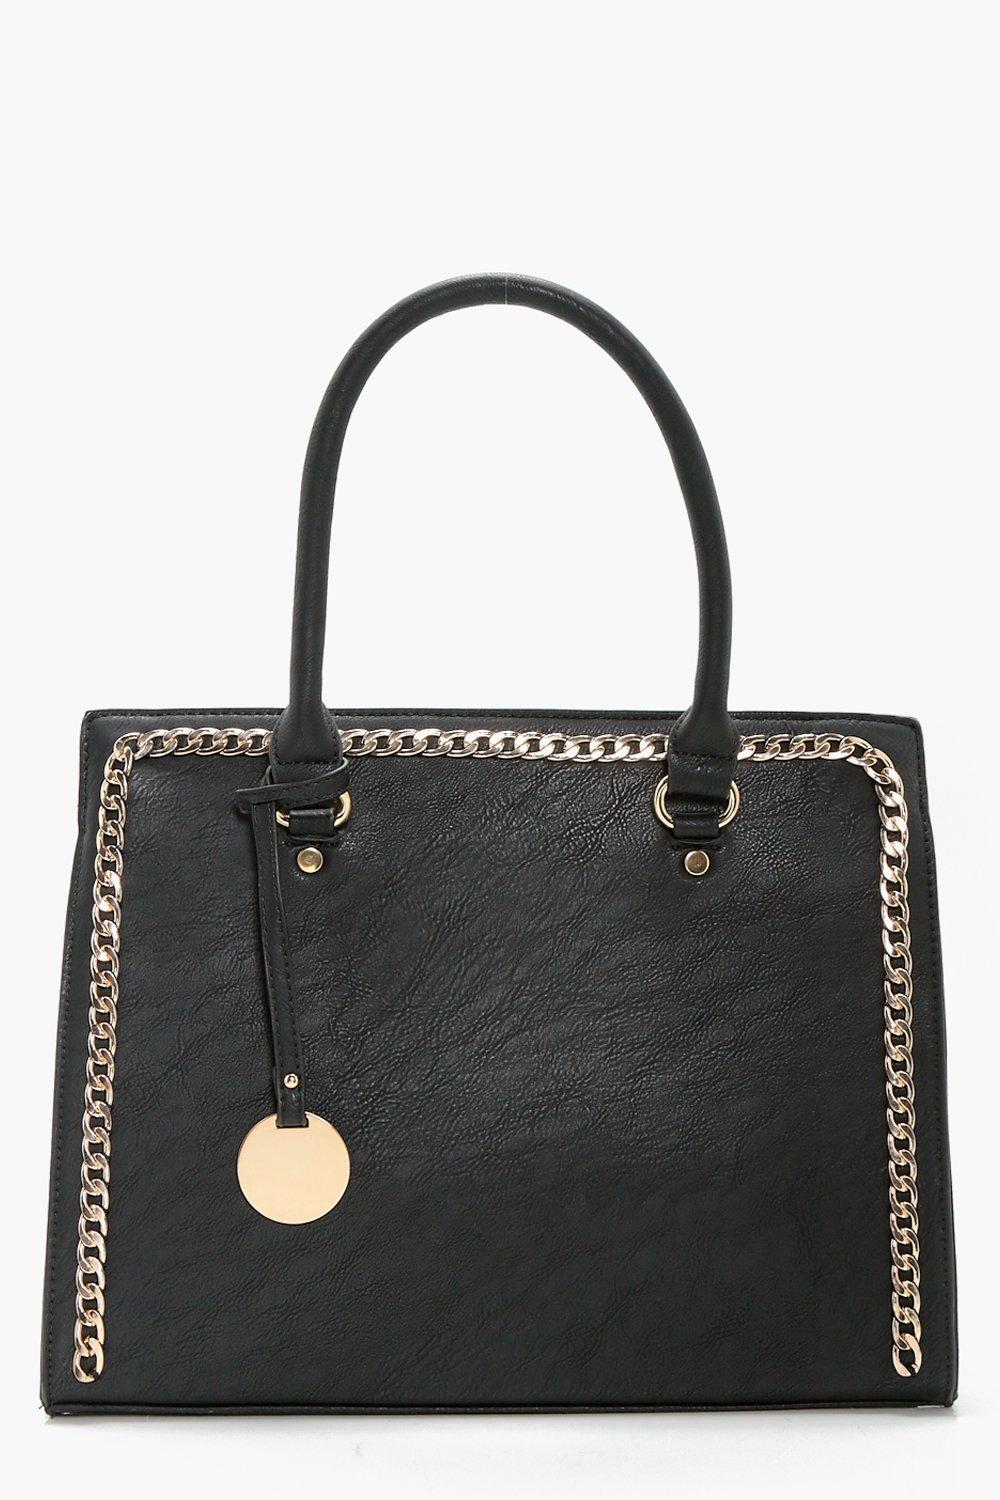 Chain Detail Tote - black - Sophia Chain Detail To